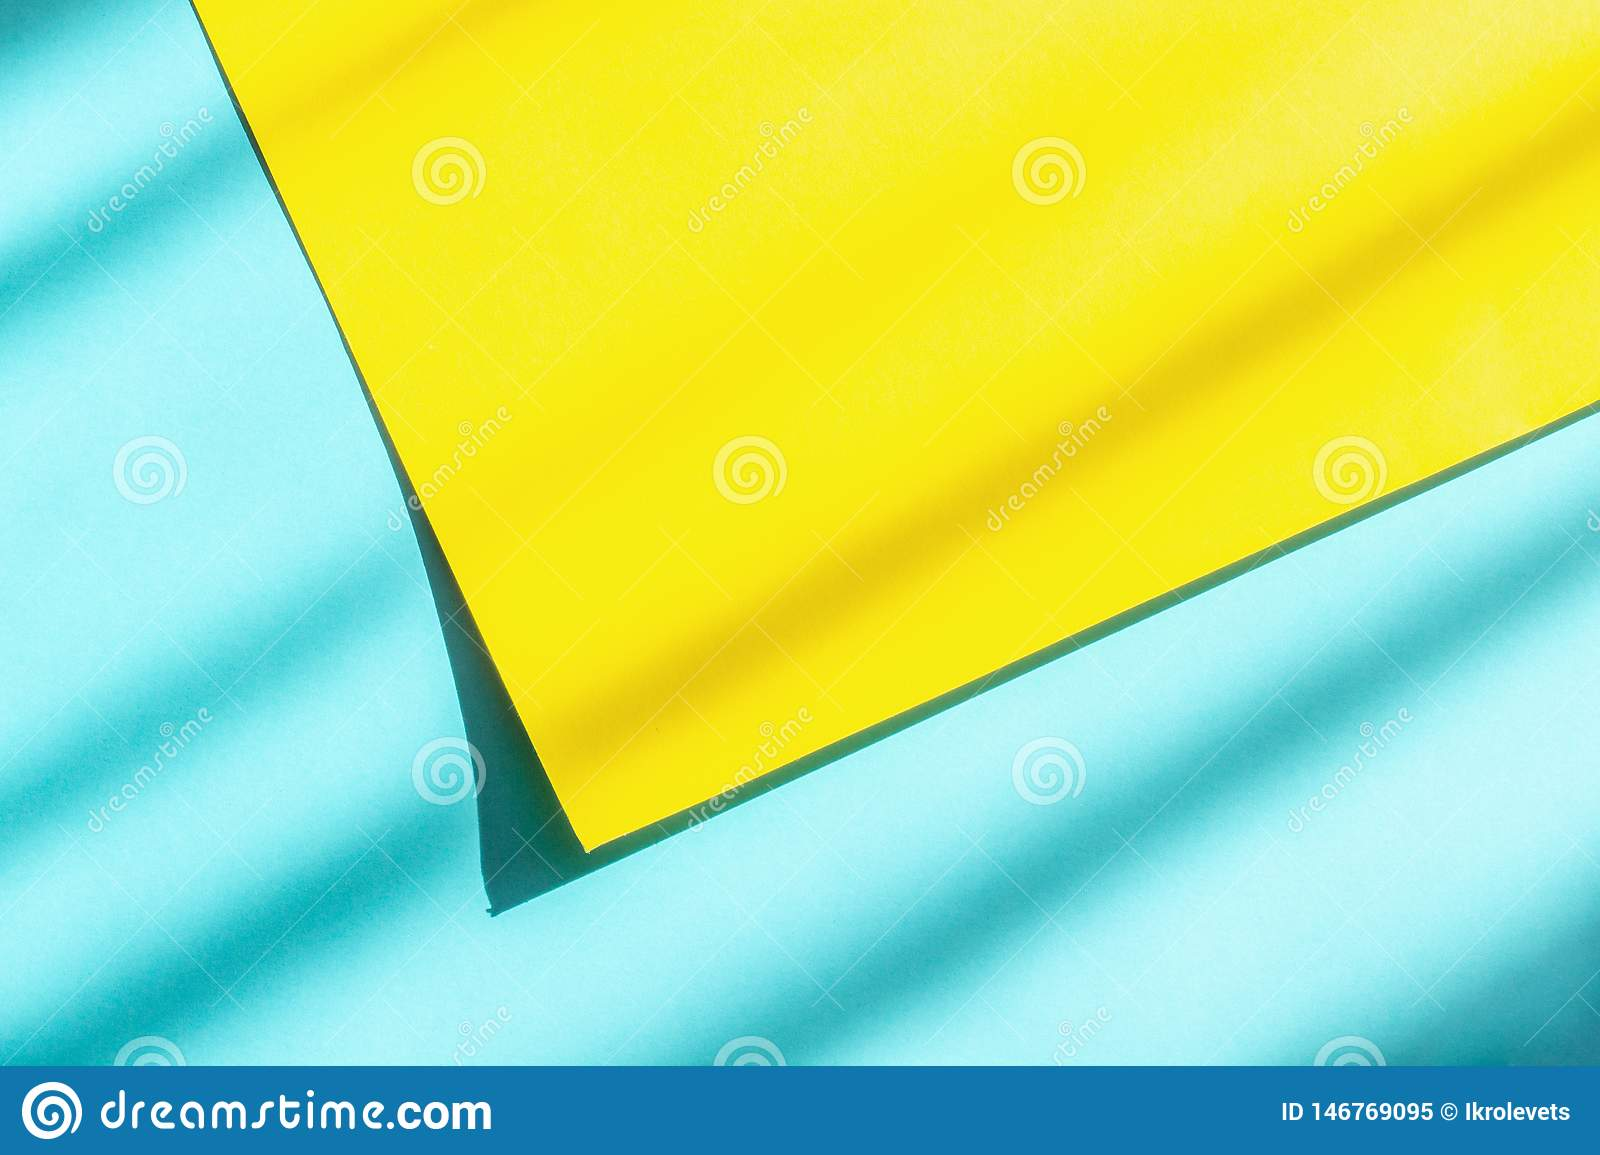 Abstract blue and yellow paper background with hard light and shadow for your design